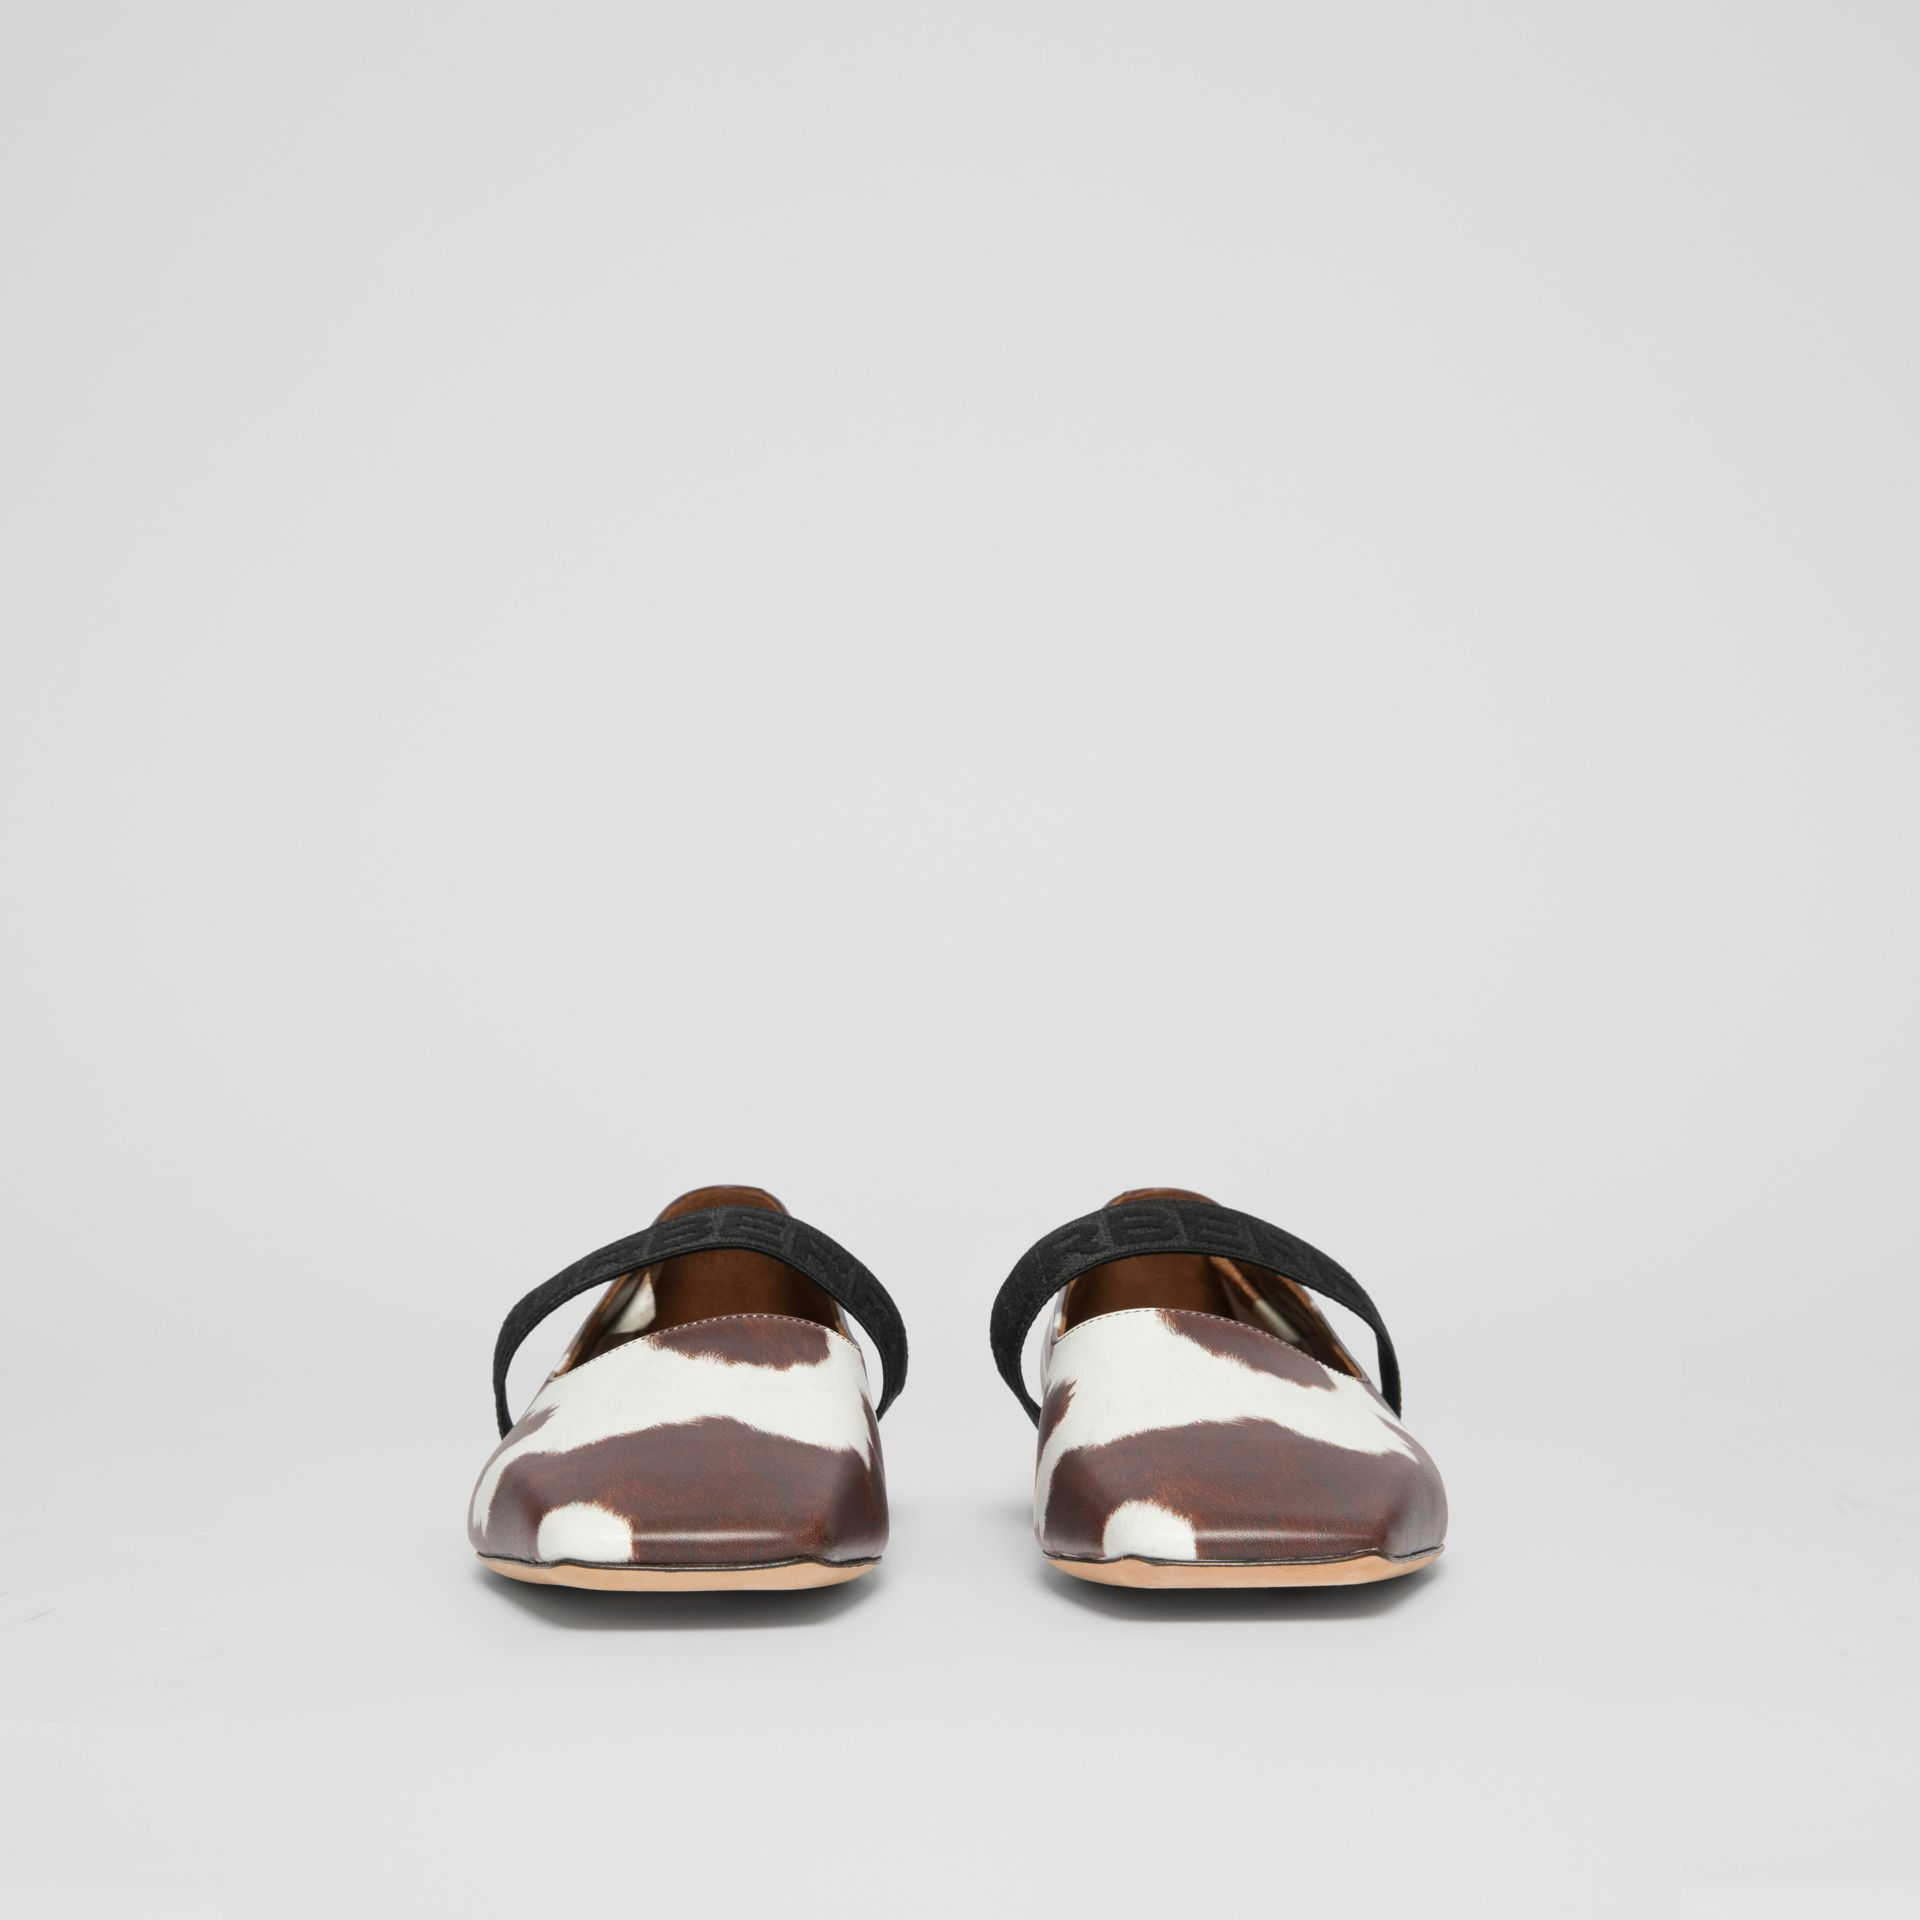 Logo Detail Cow Print Leather Flats - Women | Burberry Canada - gallery image 3